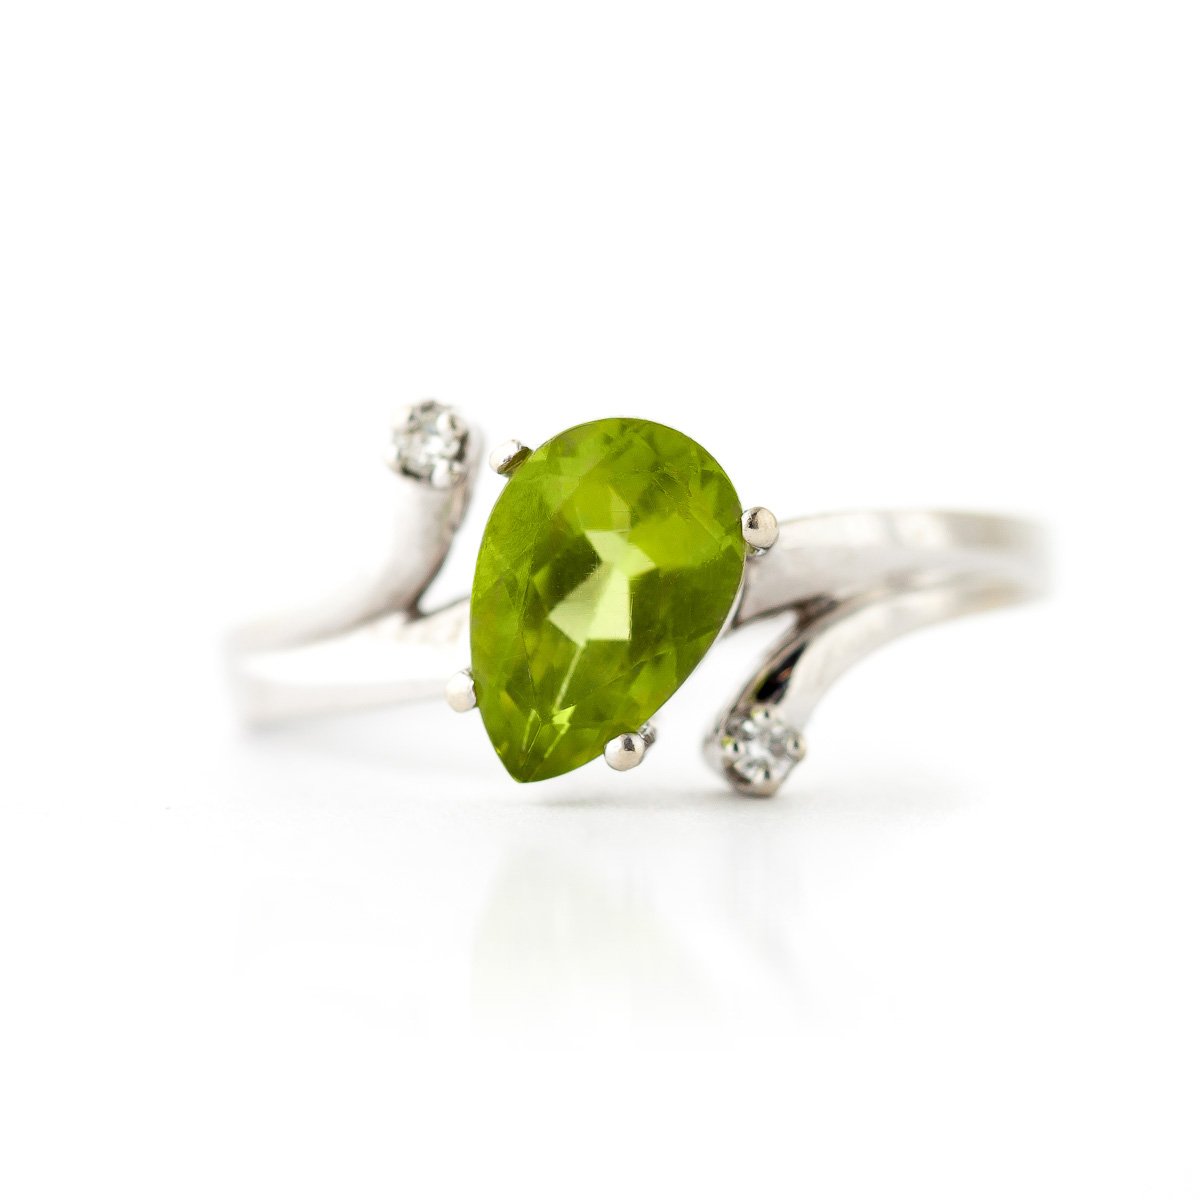 Peridot and Diamond Flank Ring 1.5ct in 9ct White Gold